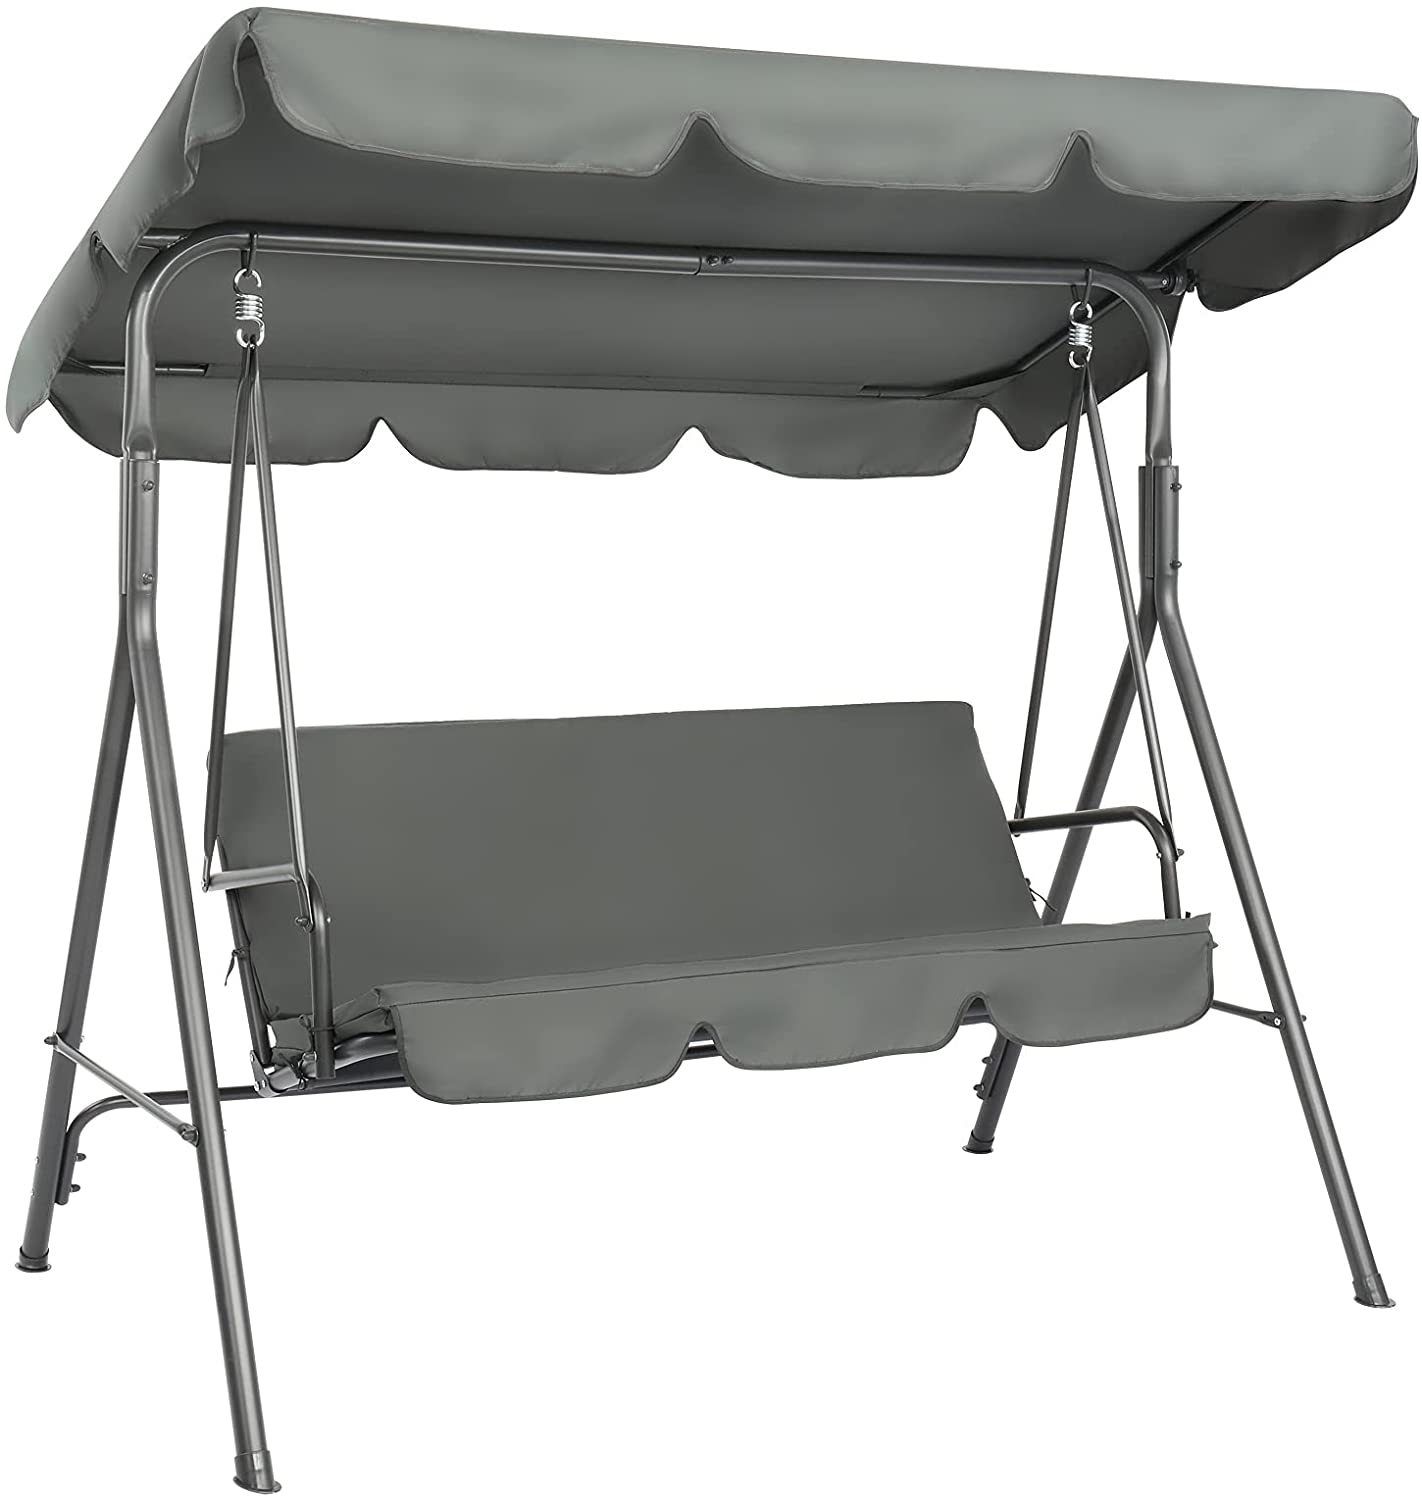 VINGLI Ranking TOP11 Upgraded 3 Person Outdoor with Swing Stand Adjusta Limited price Porch